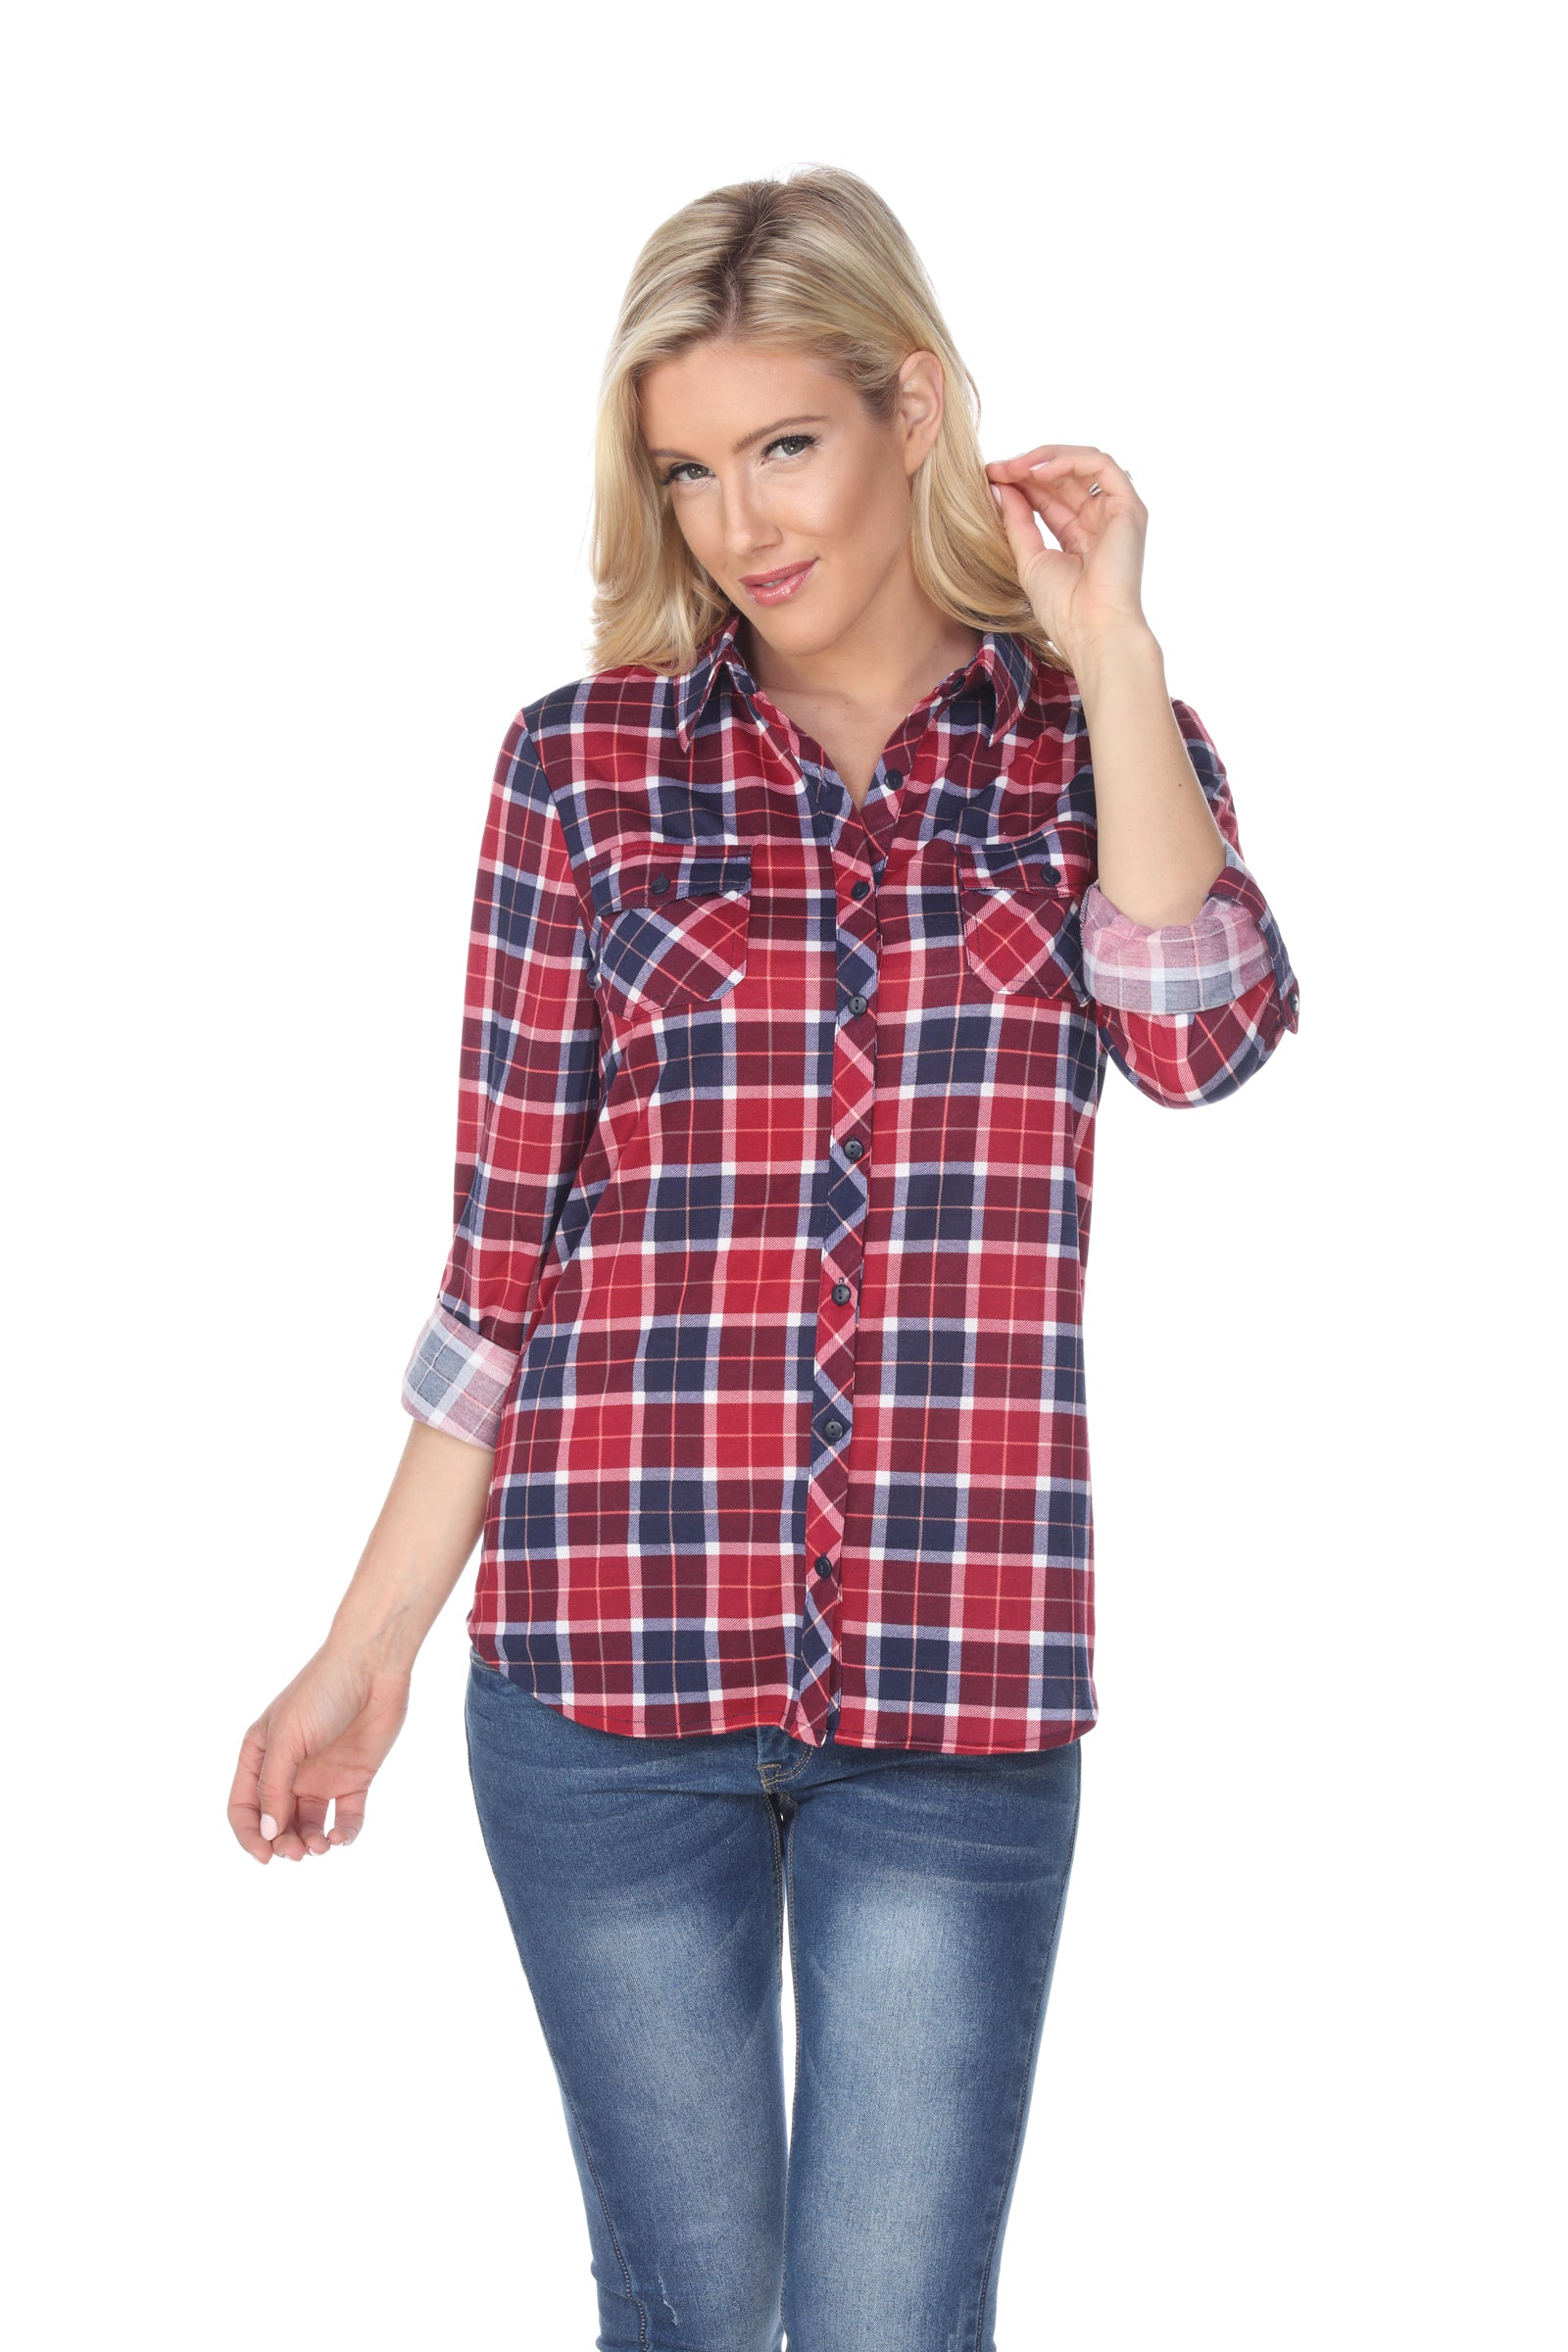 Oakley' Stretchy Plaid Top  Discount Designer Fashion Clothes Shoes Bags Women Men Kids Children Black Owned Business